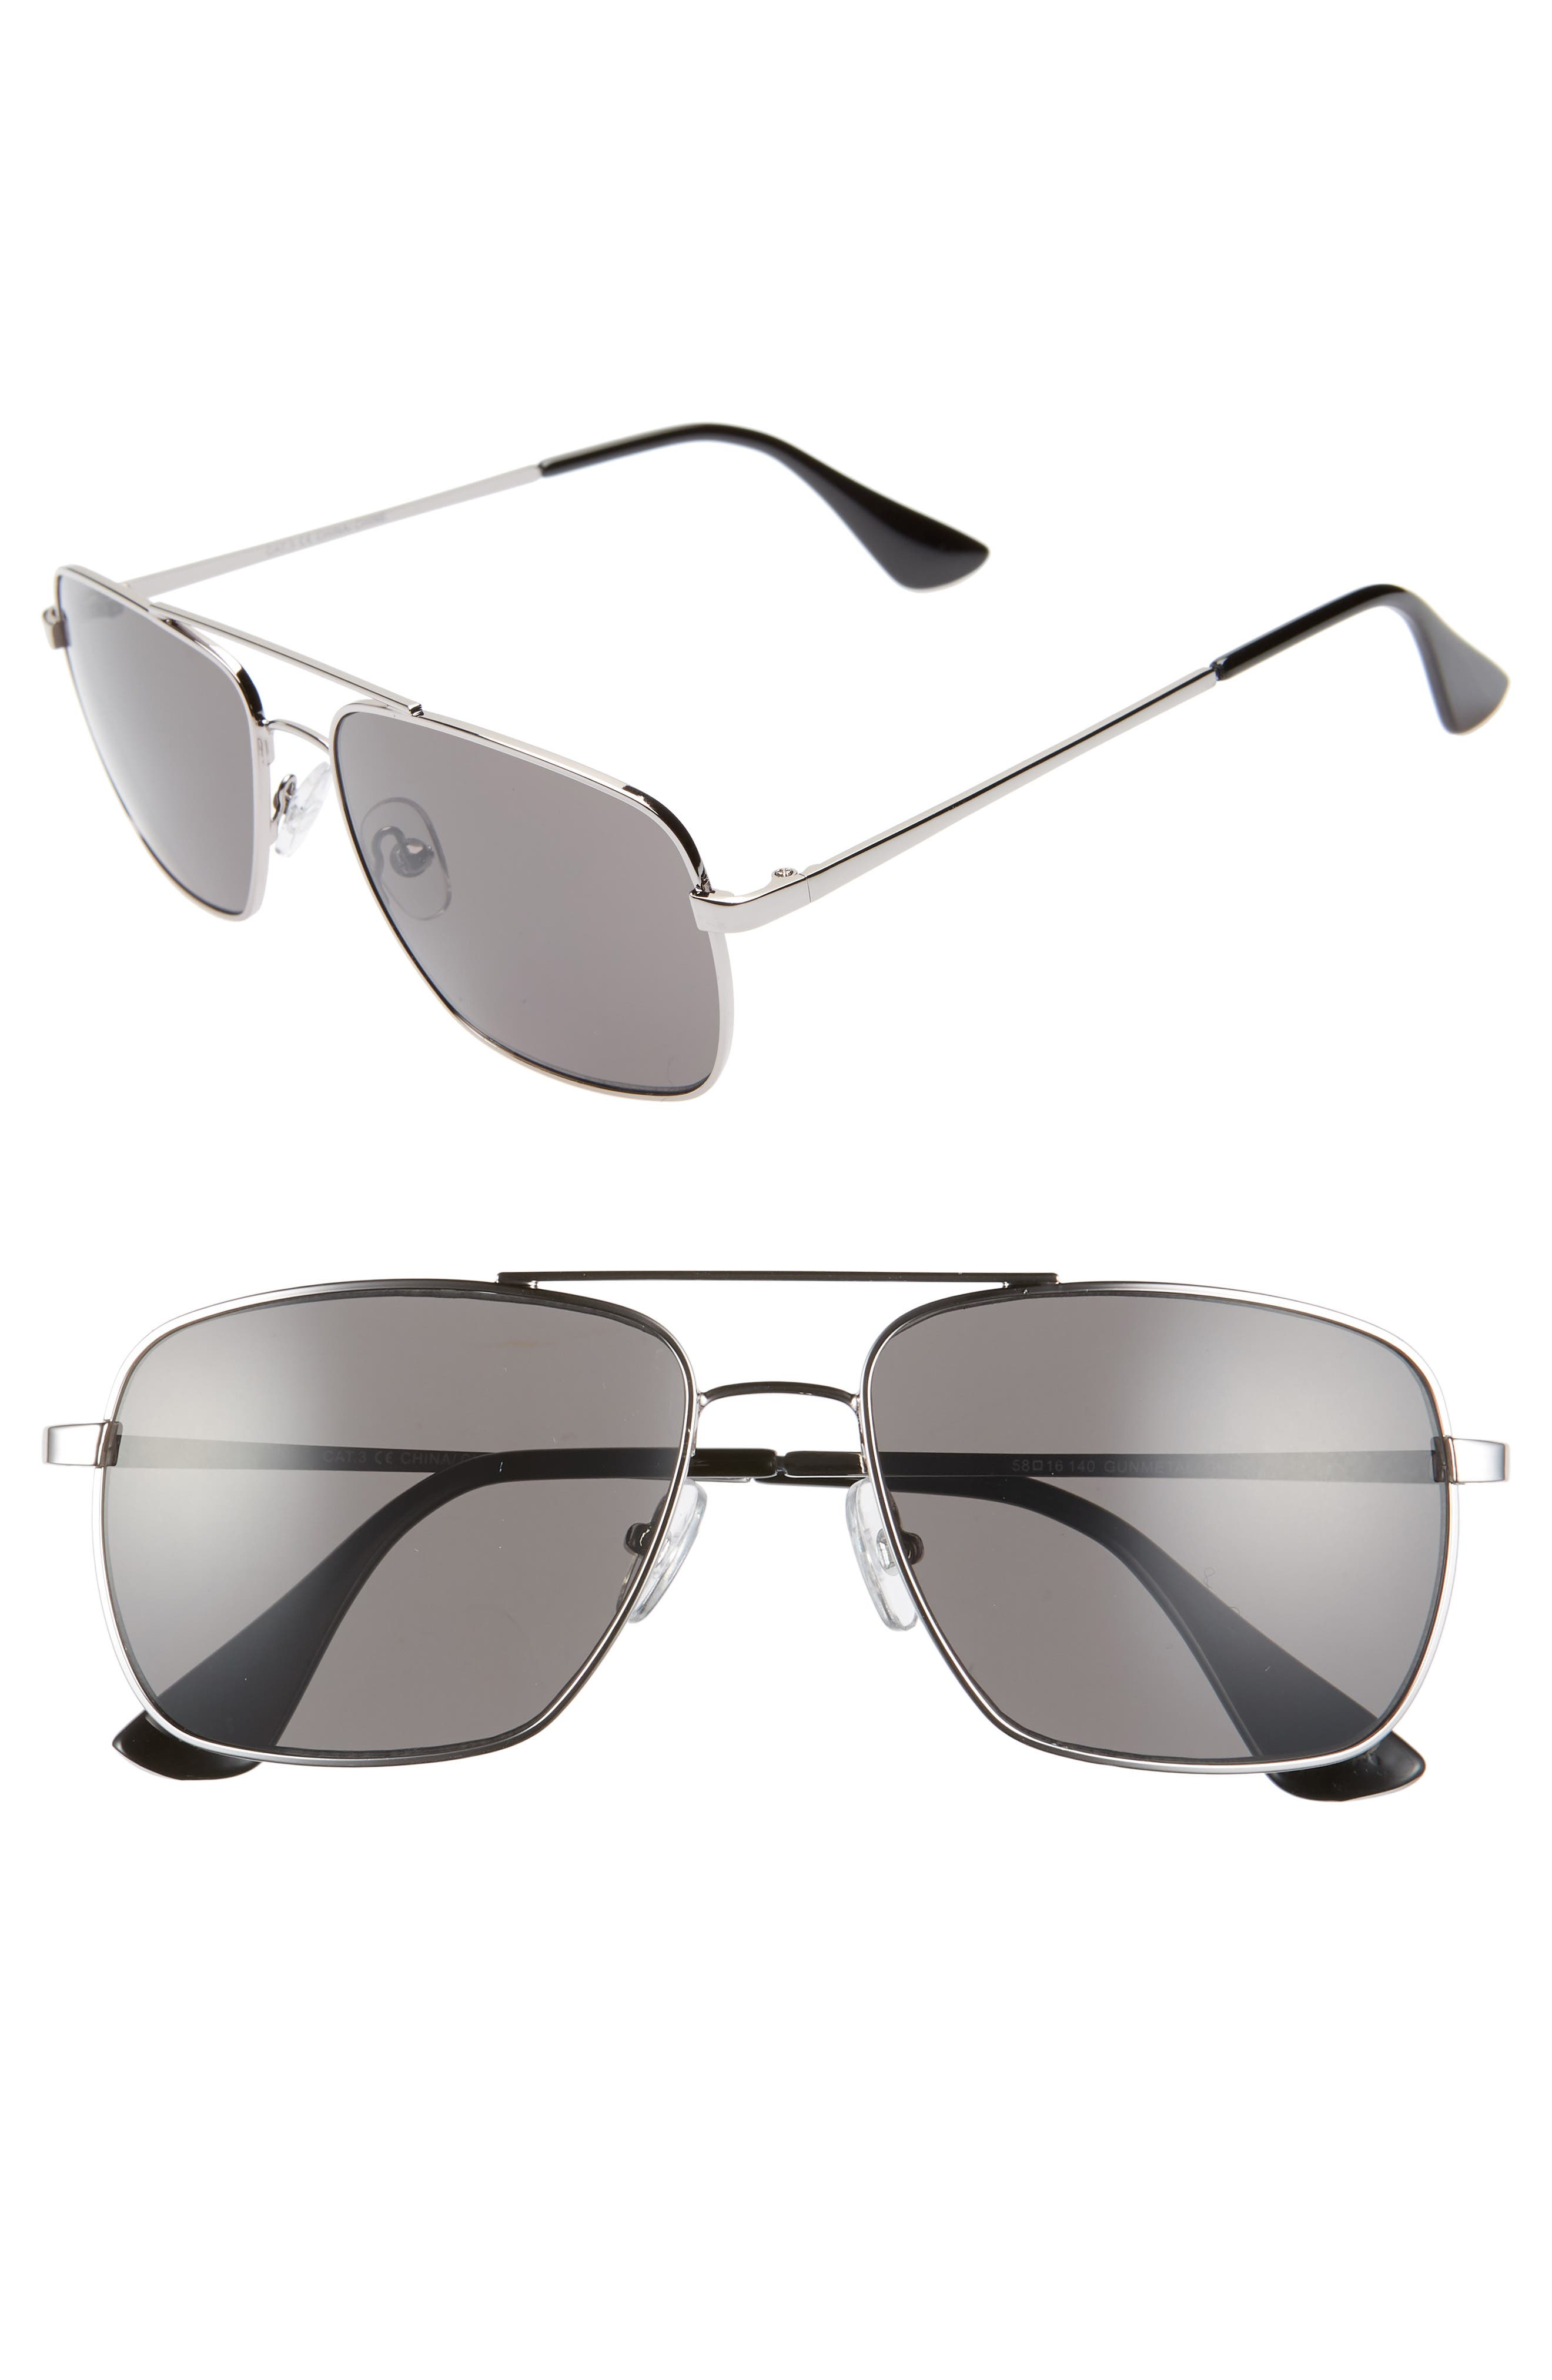 Taylor 58mm Aviator Sunglasses,                             Main thumbnail 1, color,                             GUNMETAL/ GREY